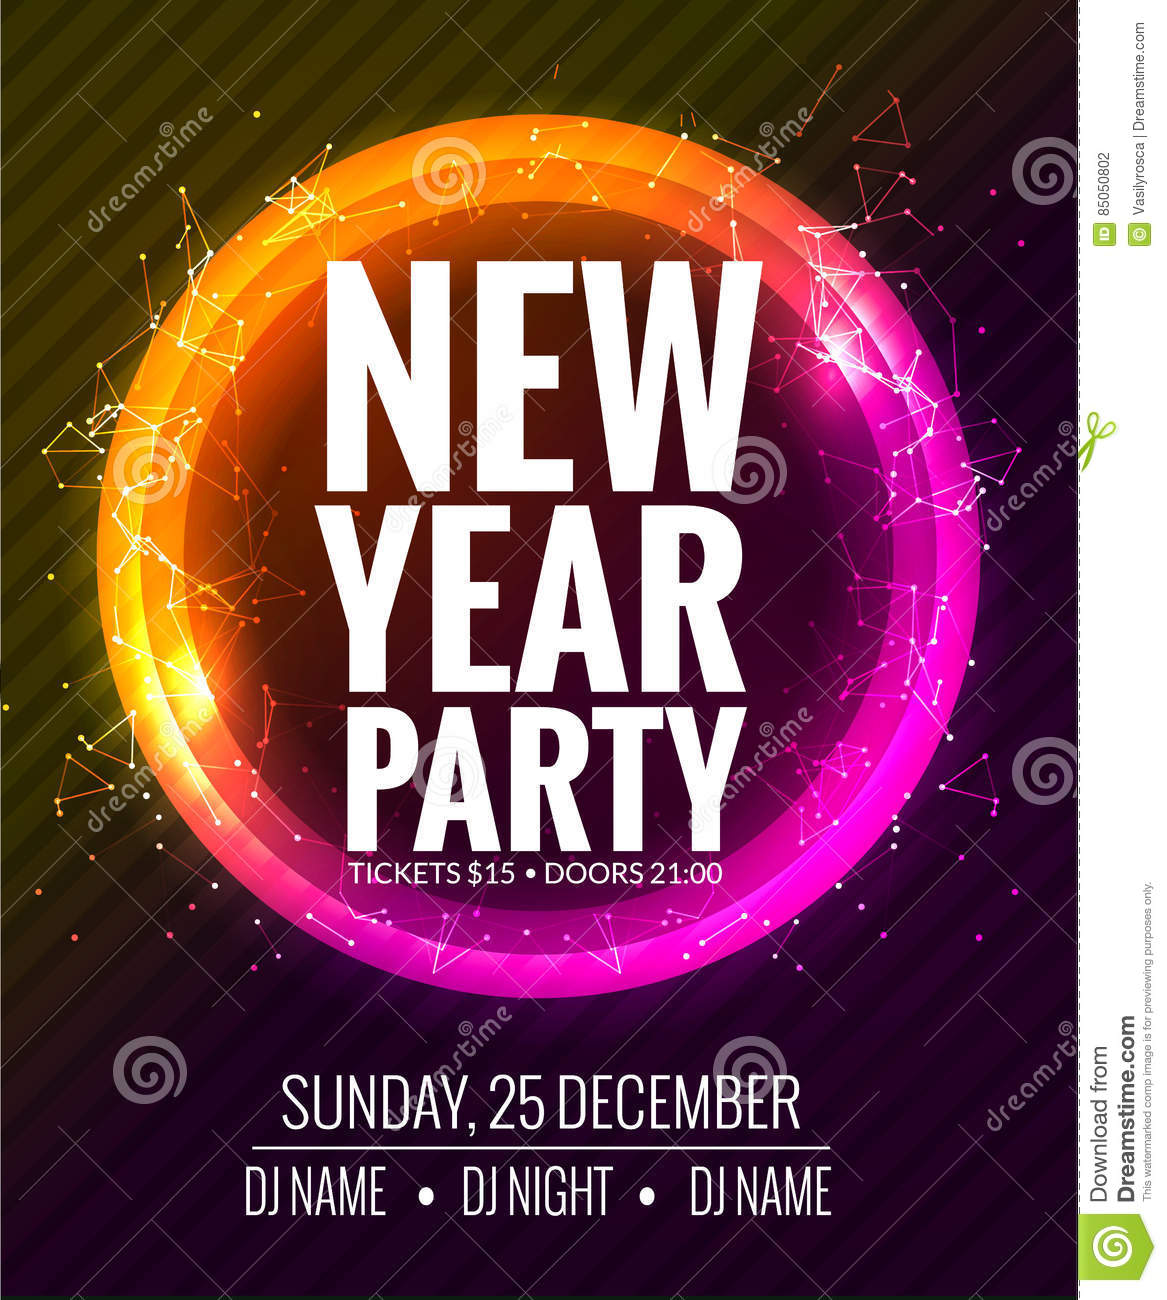 New year party and christmas party poster template design for Terrace new year party